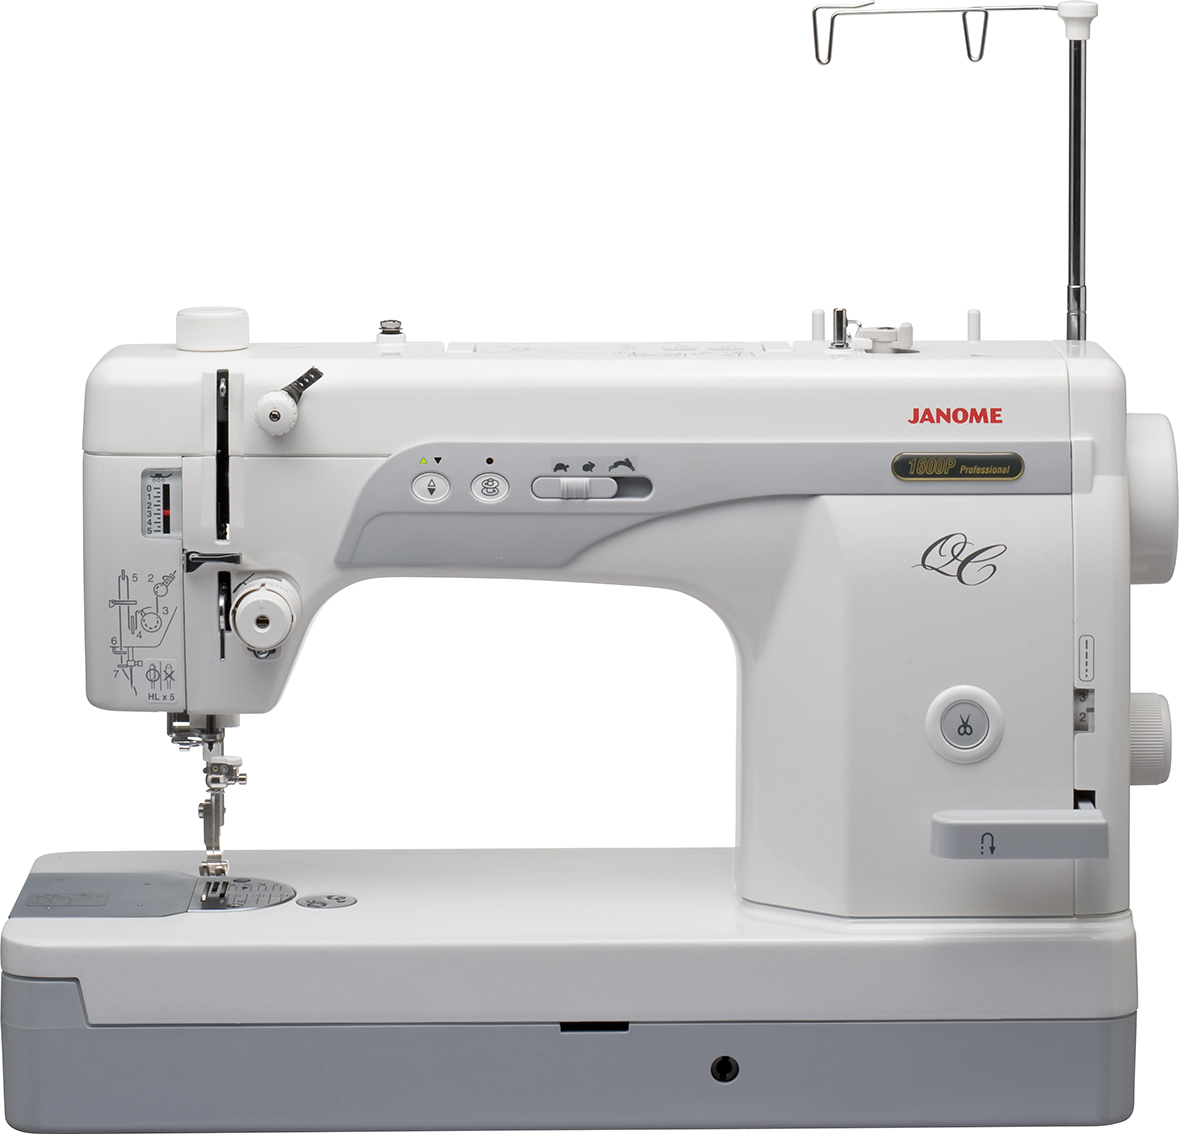 Janome America: World's Easiest Sewing, Quilting, Embroidery Machines &  Sergers - NOT FOR COMMERCIAL USE